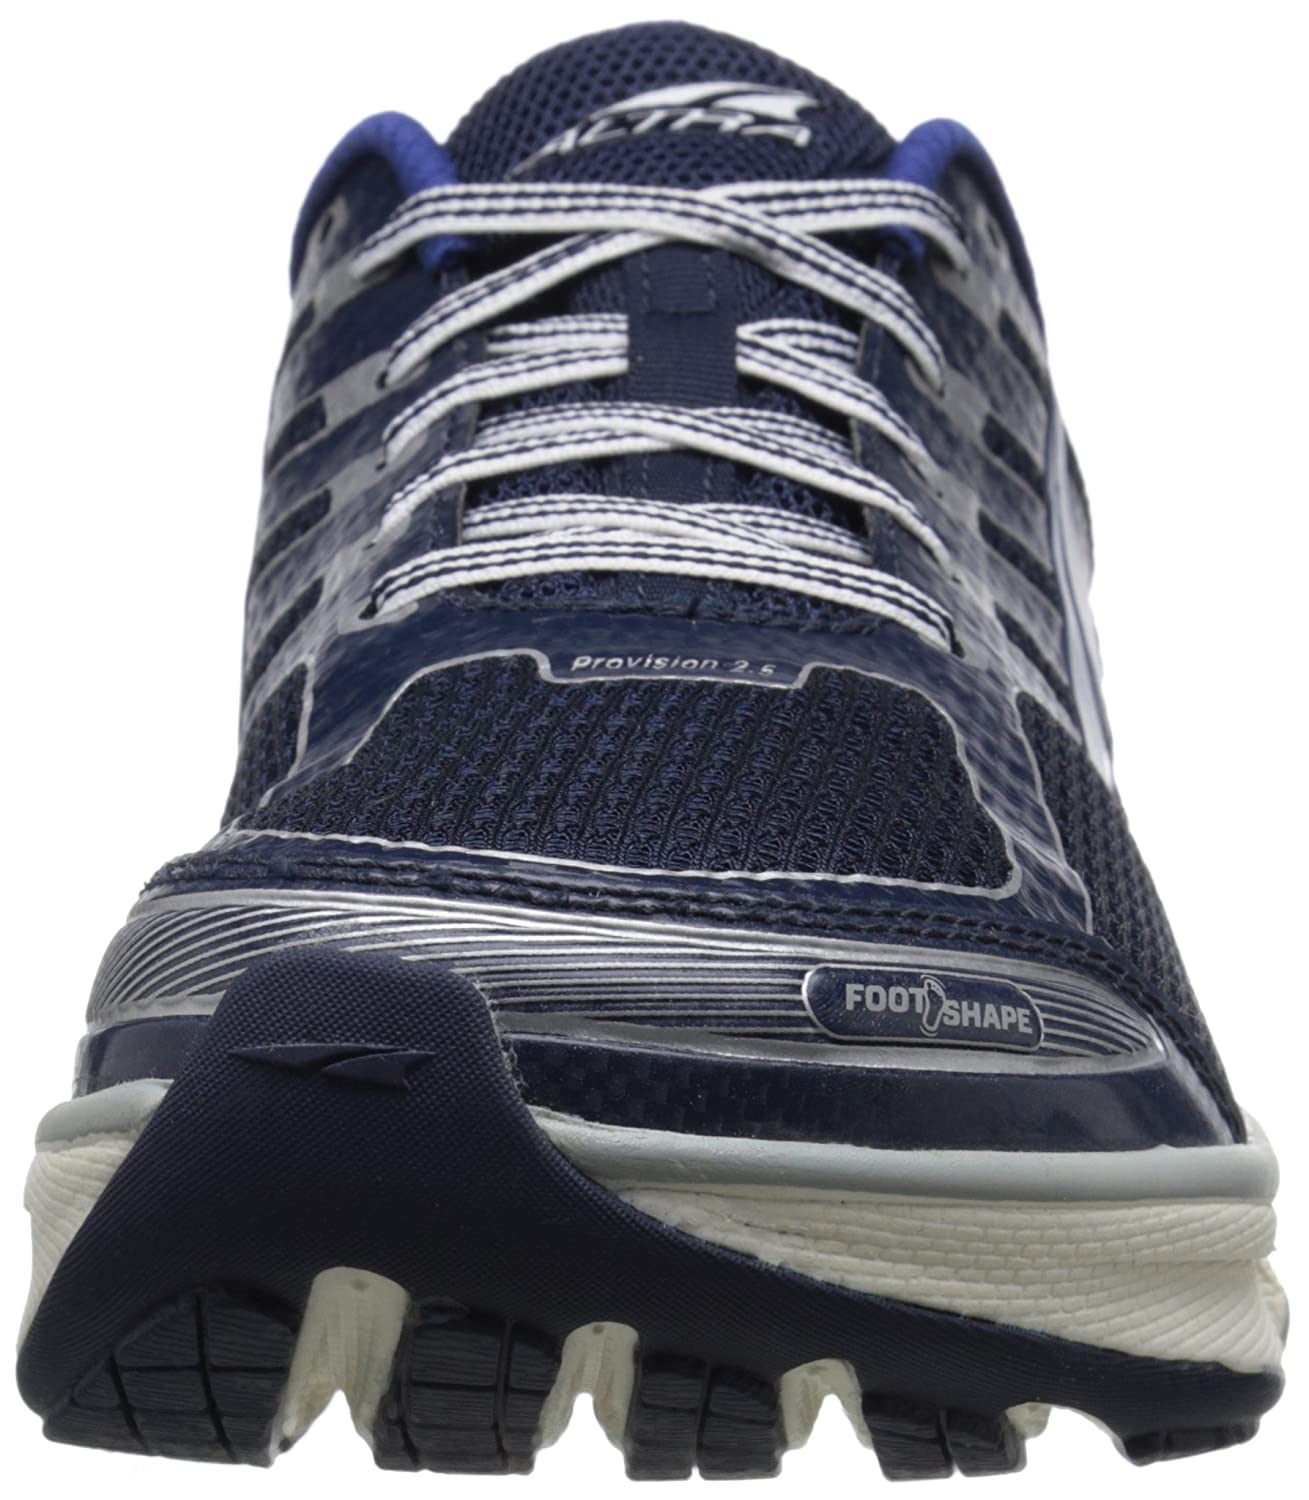 Altra Men s Provision 2.5 Running Shoe